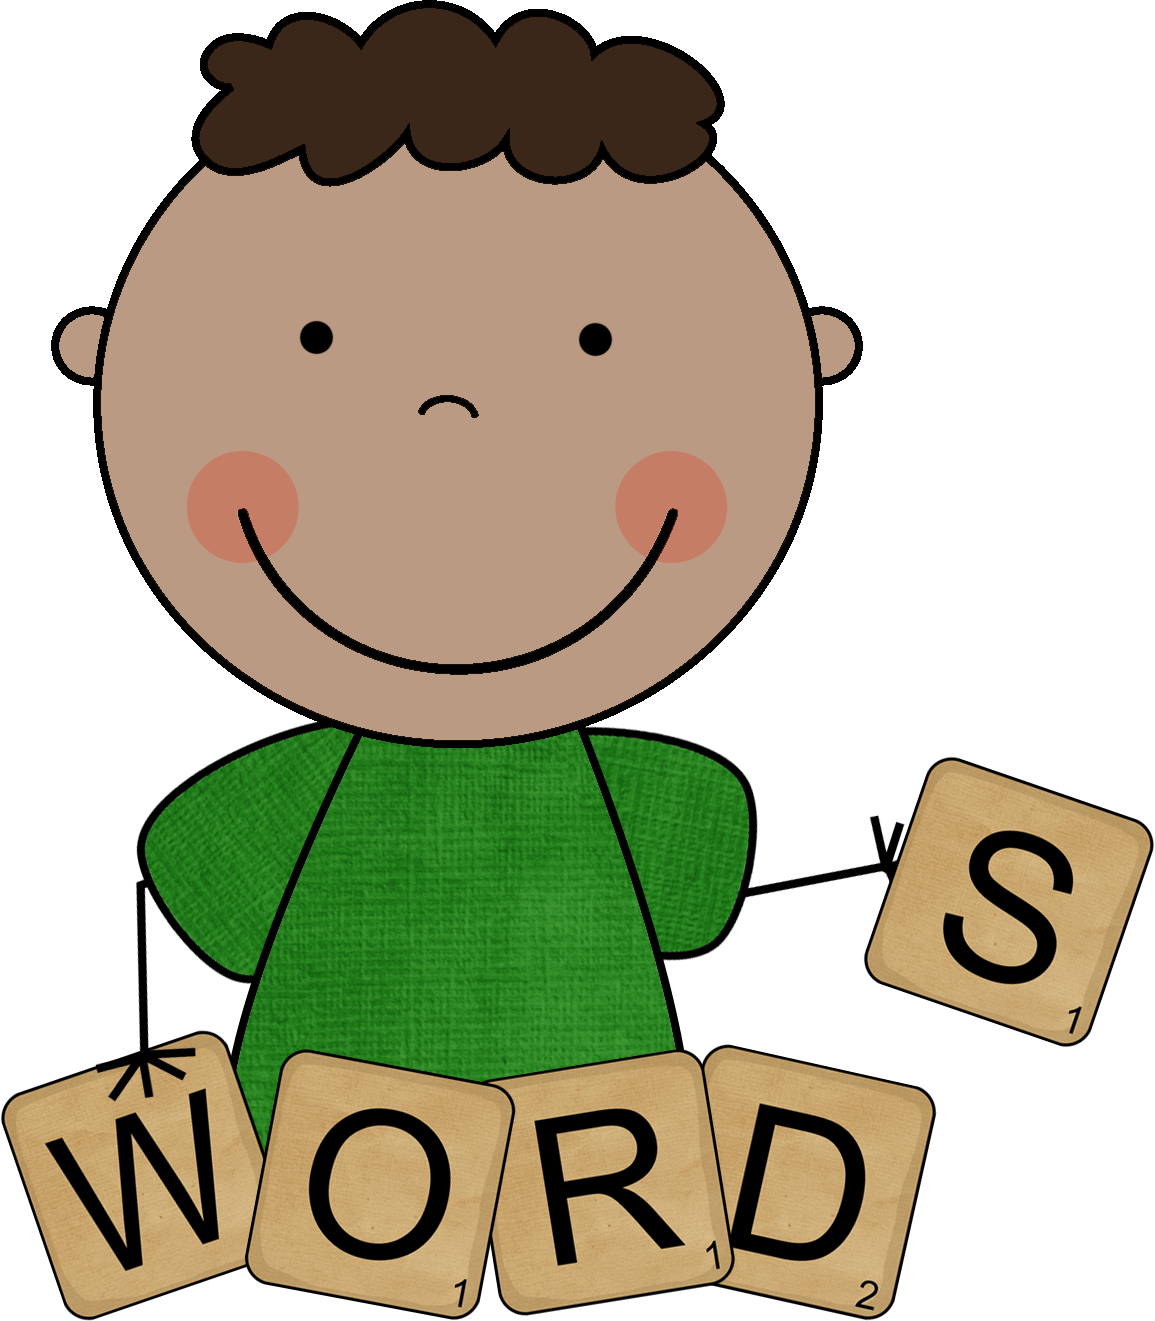 Daily 5 Word Work Clipart   Clipart Panda   Free Clipart Images